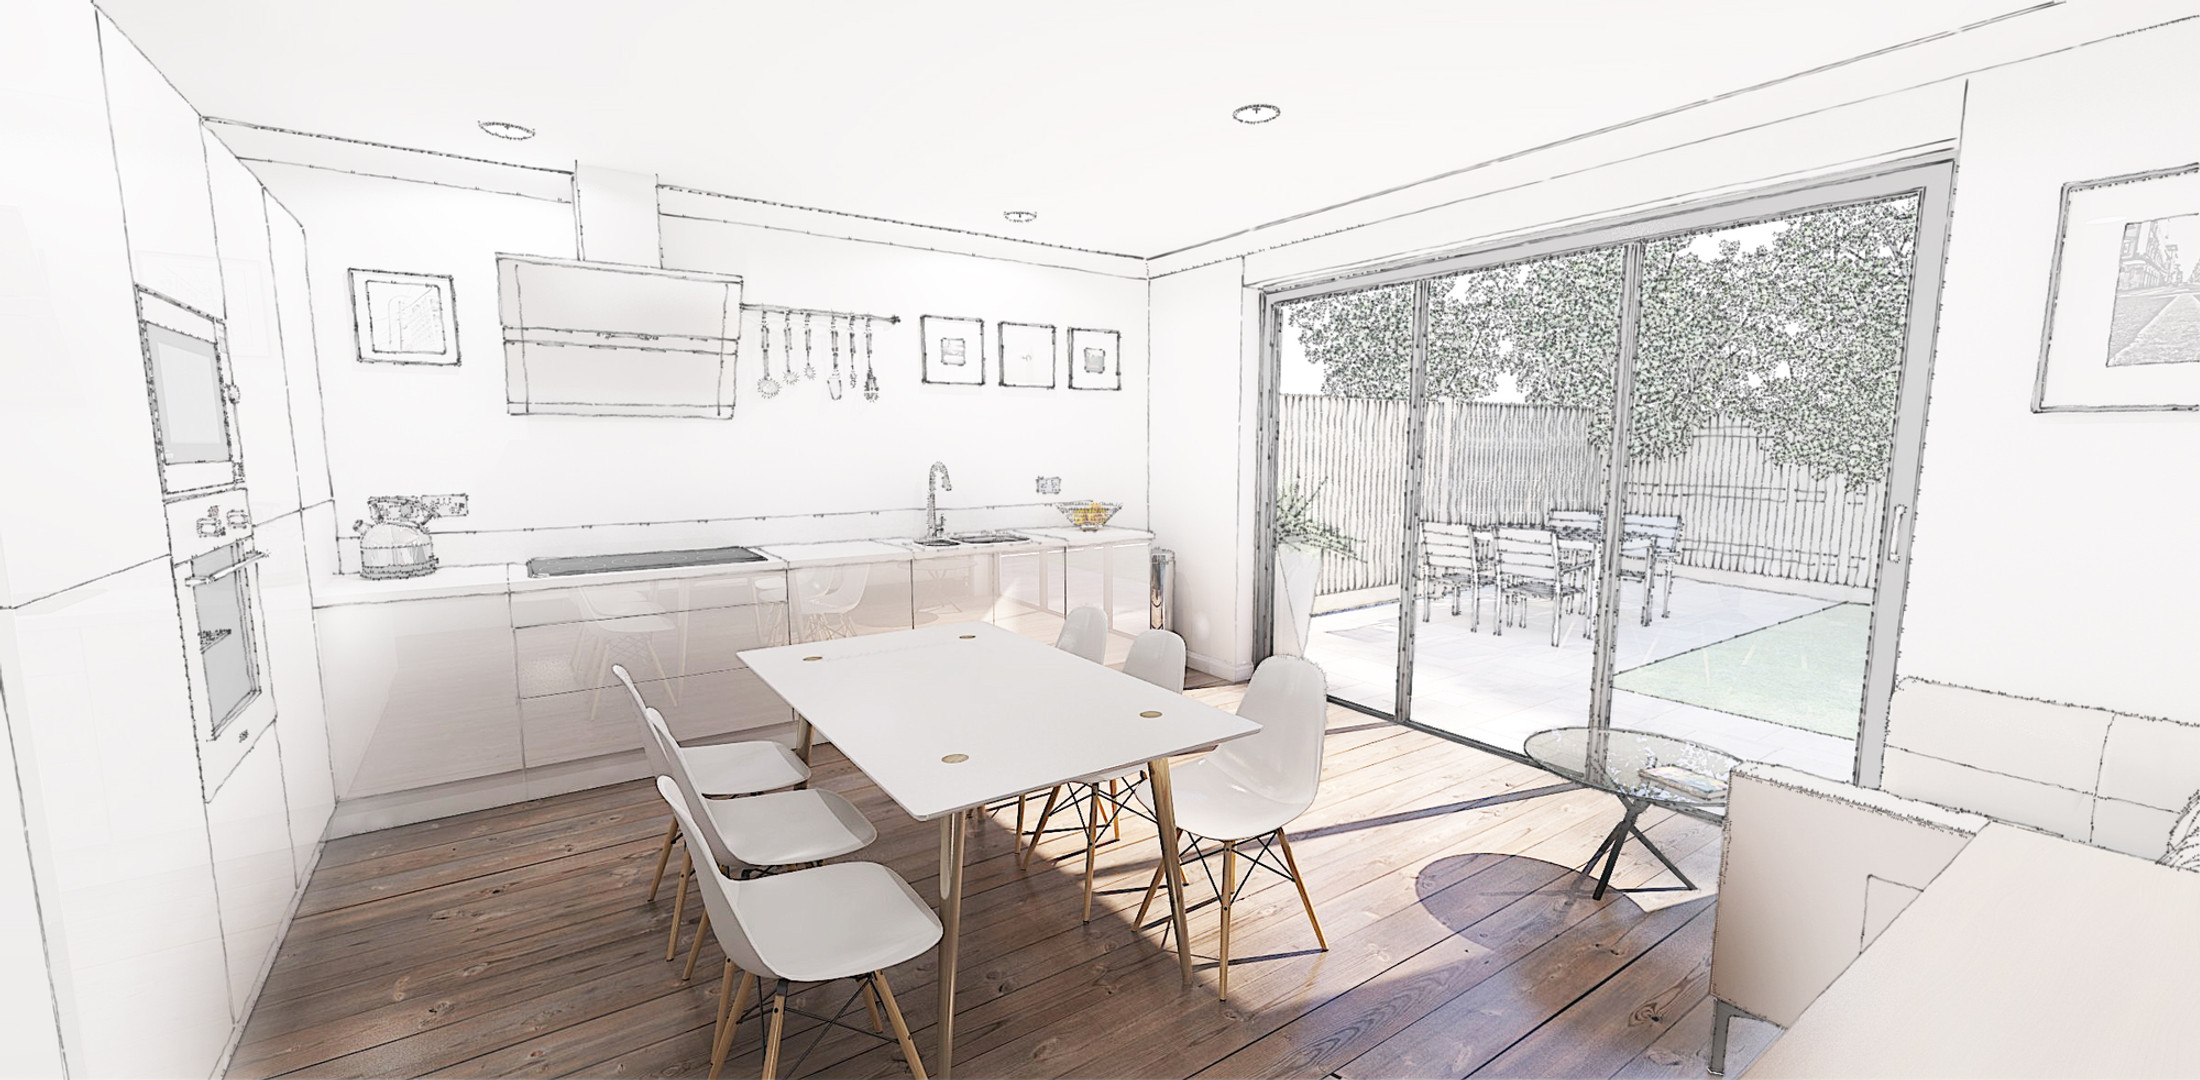 87 Alfred rd - Internal Model sketch ove